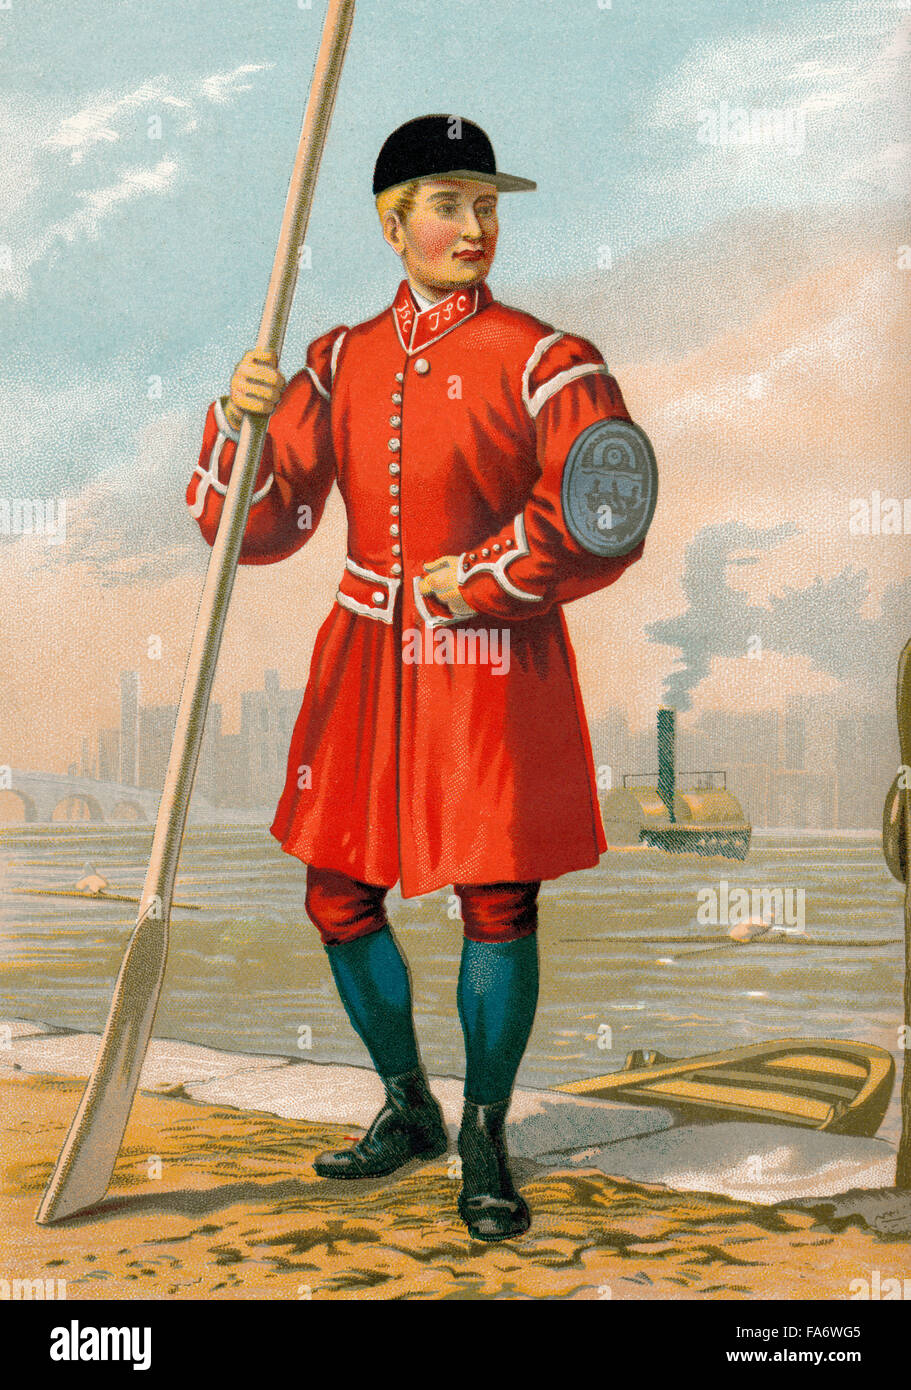 A waterman in Doggett's Coat and Badge, the oldest rowing race in the world, River Thames, London, England, - Stock Image